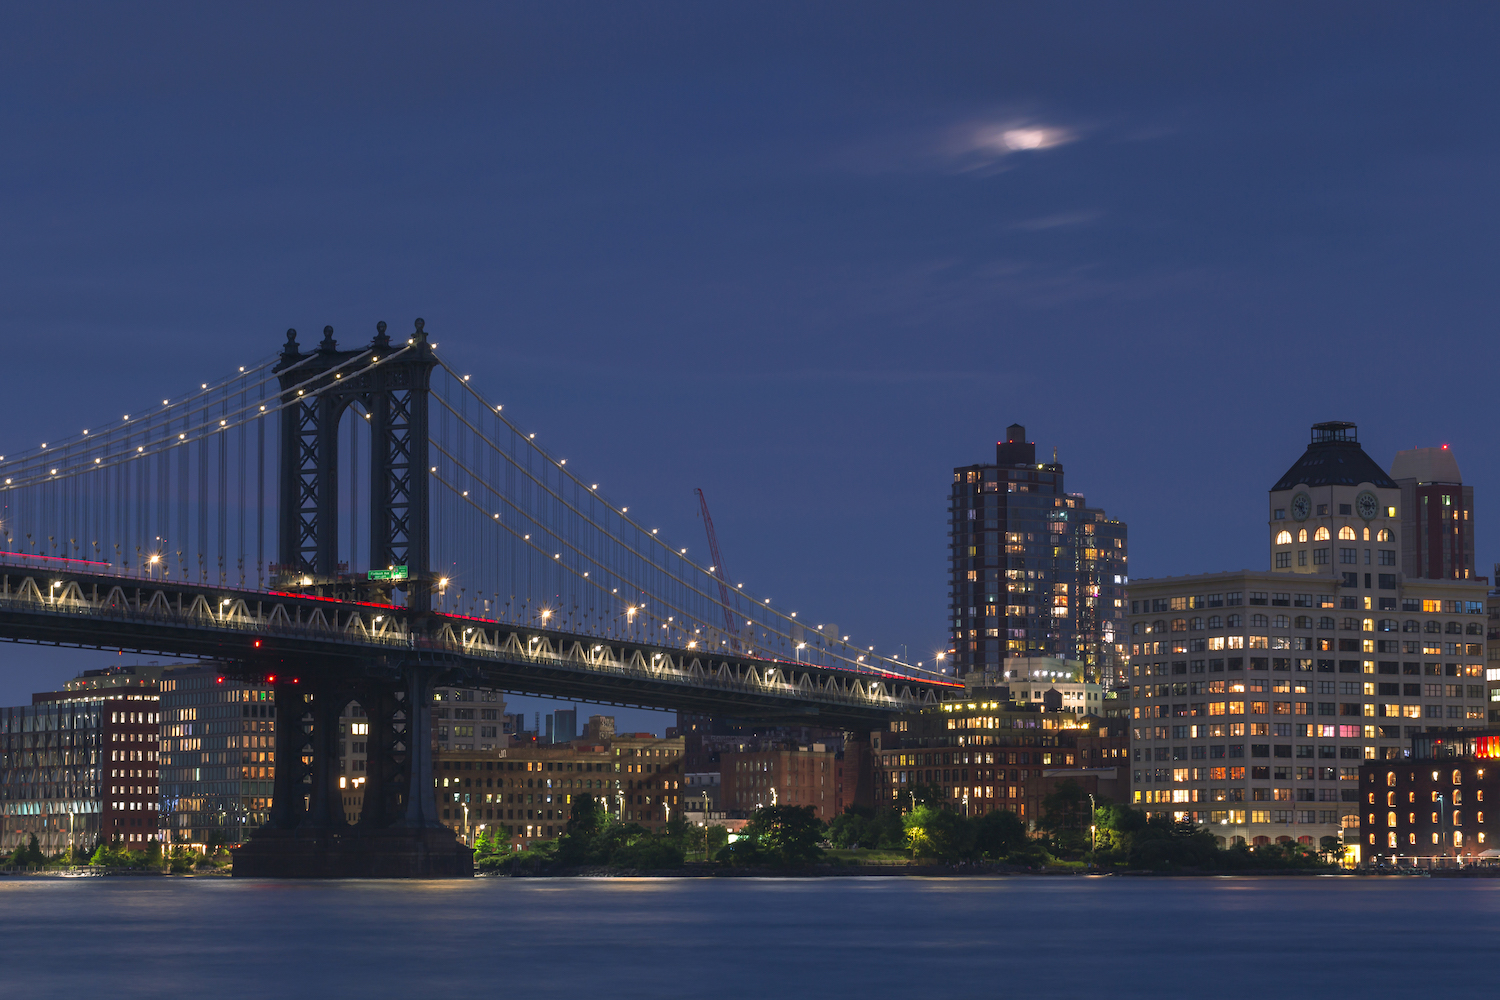 Manhattan Bridge and Dumbo from East River with full moon example image 1